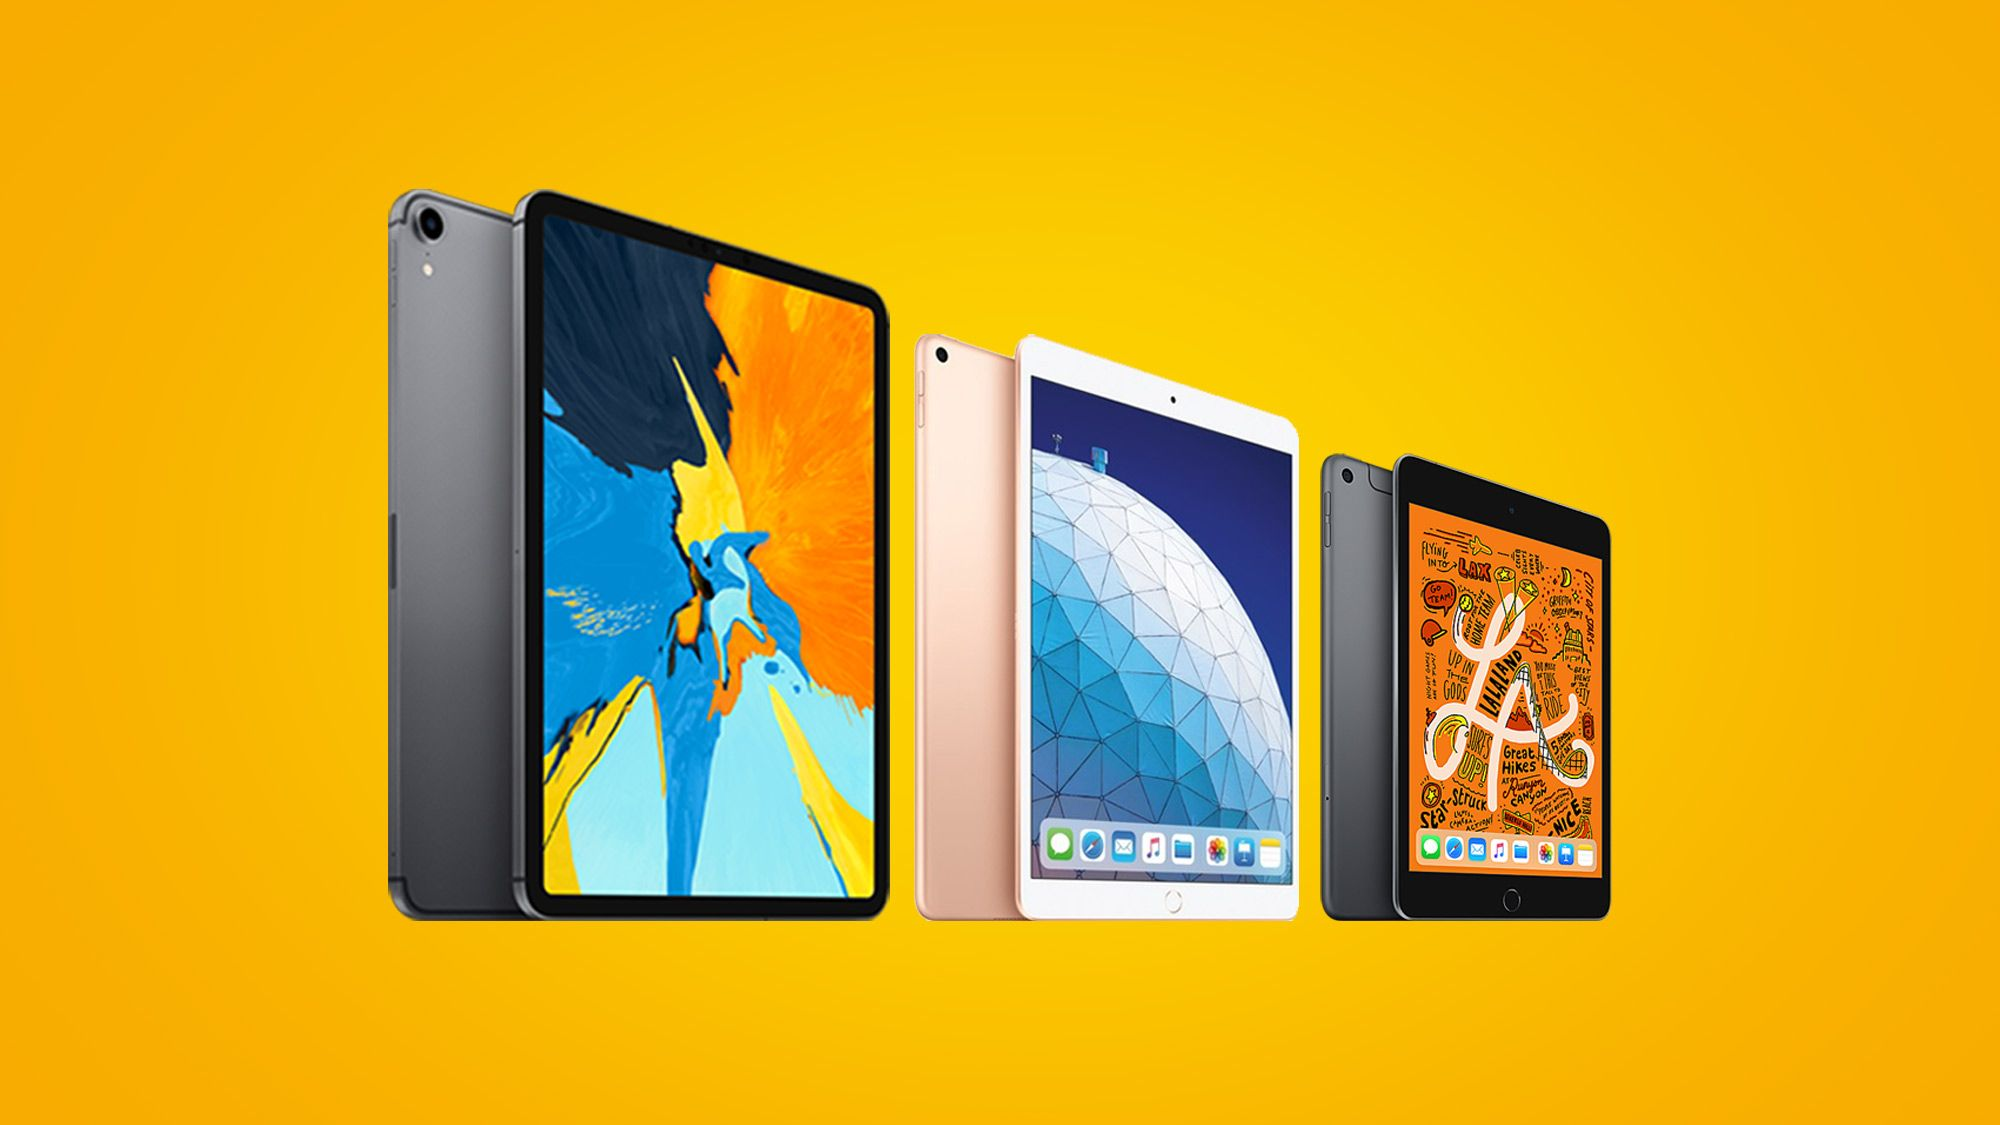 The Best Cheap Ipad Deals In November 2020 Cyber Cyber Monday New Tablets